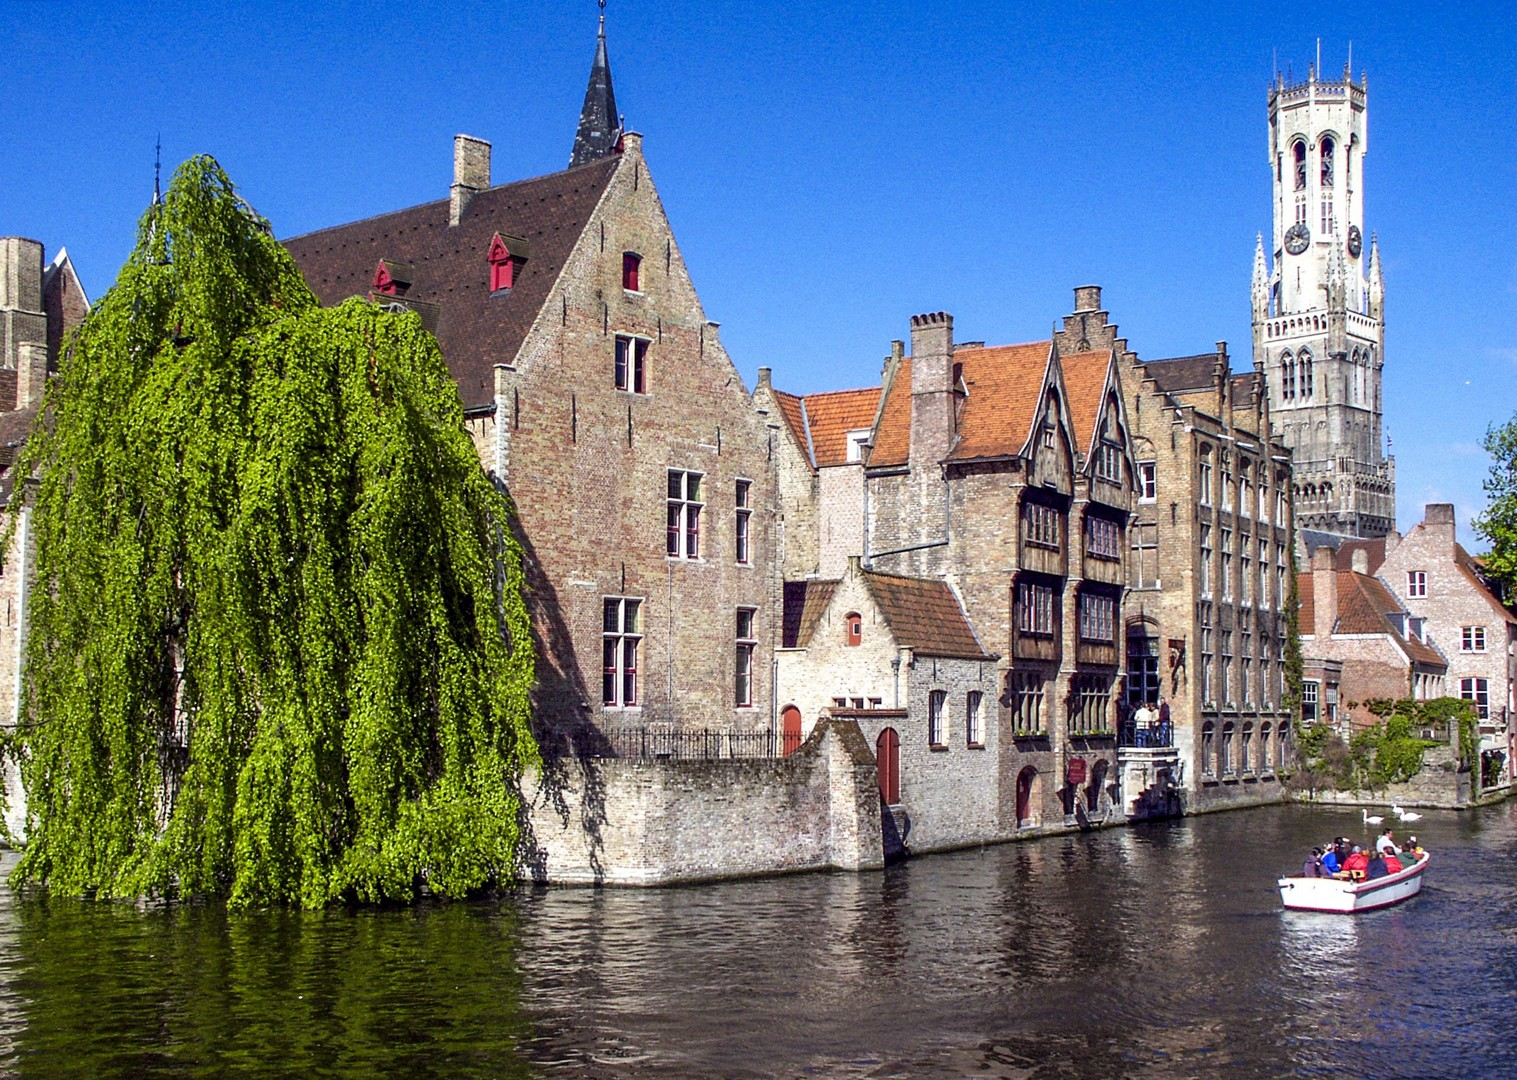 bruges-canals-bike-and-boat-amsterdam-skedaddle-comfortable-accommodation.jpg - Holland and Belgium - Amsterdam to Bruges - Premium Bike and Barge Holiday - Leisure Cycling